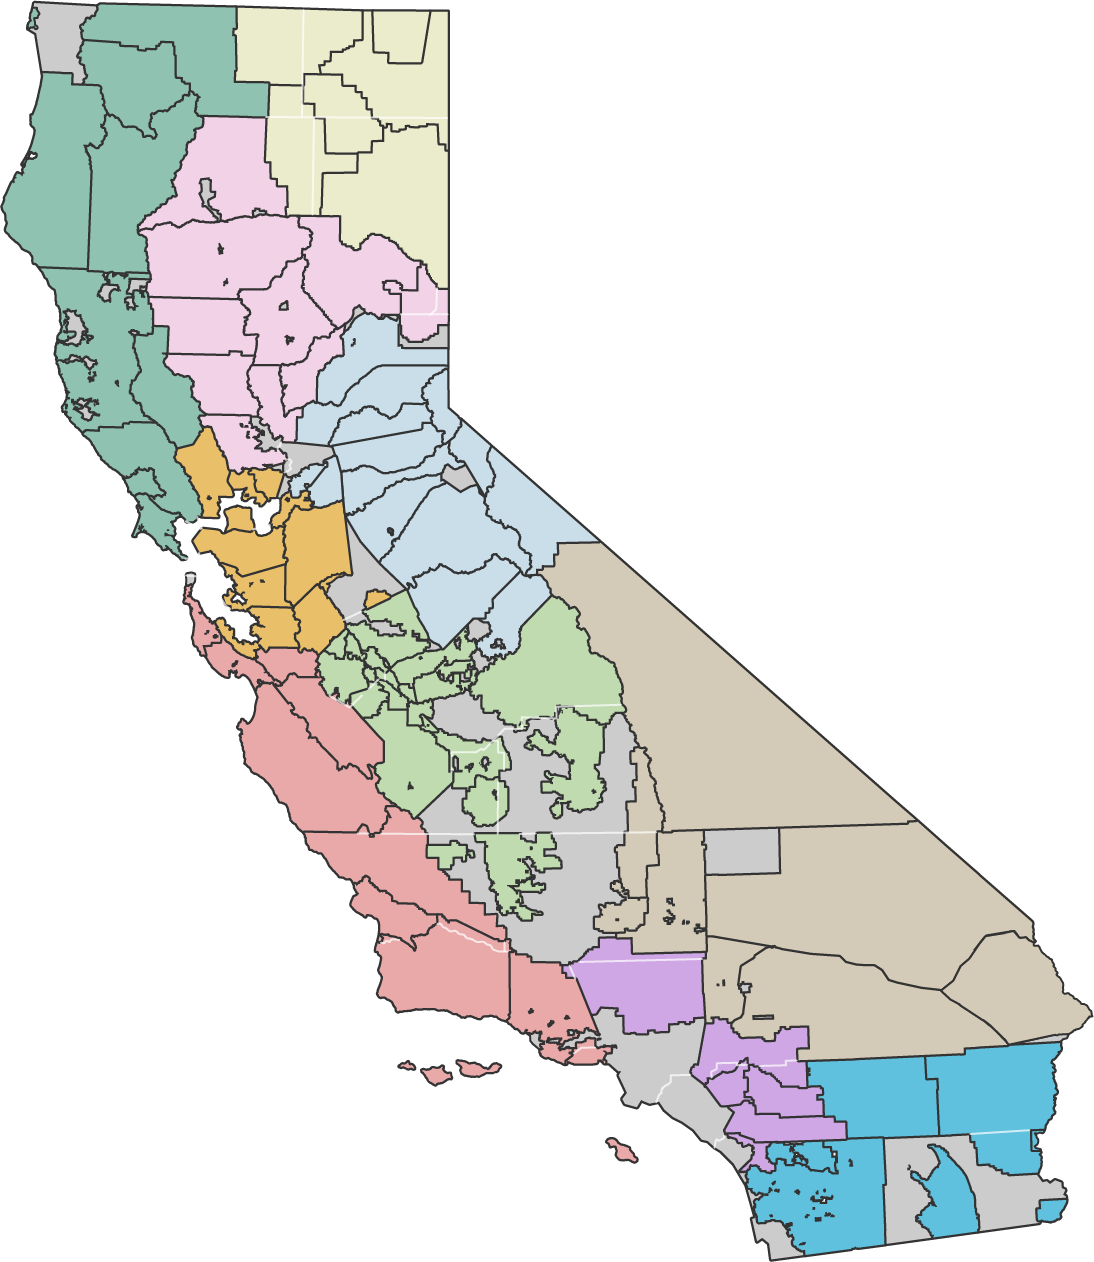 color coded map of RCD regions